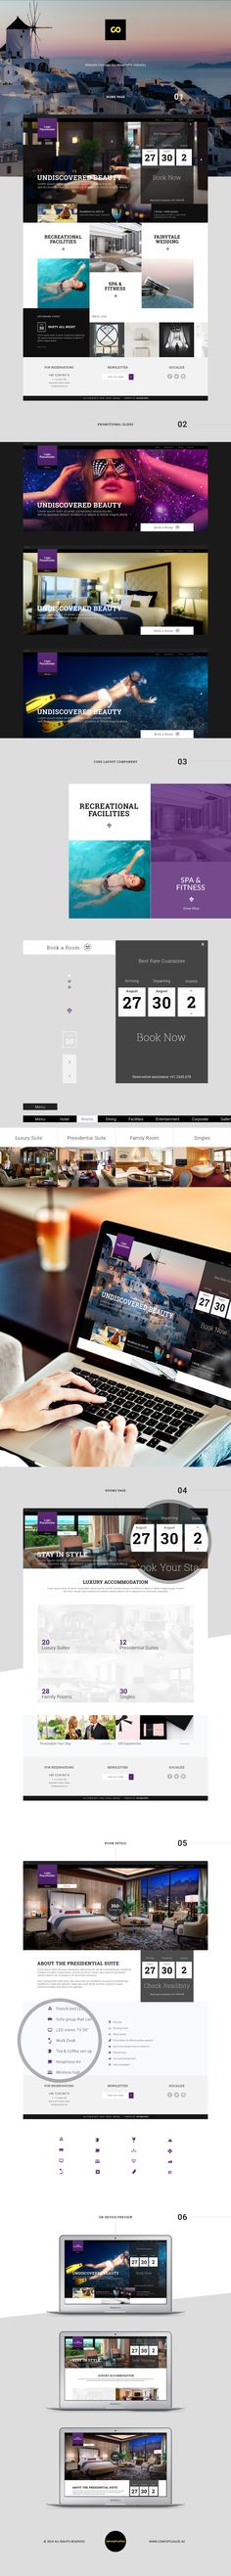 A Concept for a Hotel Website